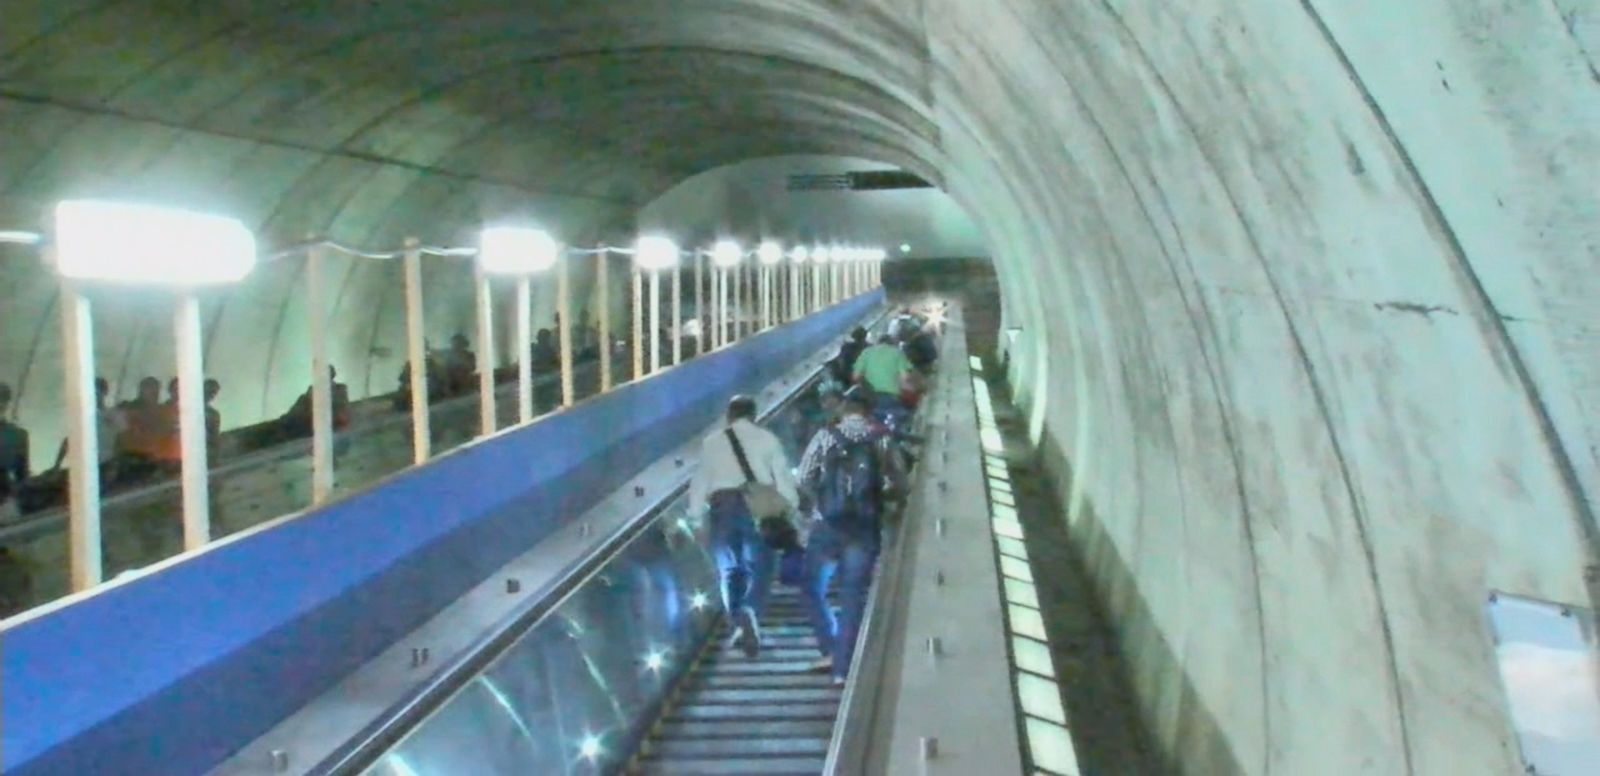 VIDEO: The Metro escalator in Bethesda, Maryland, debuted after a nine-month renovation period.